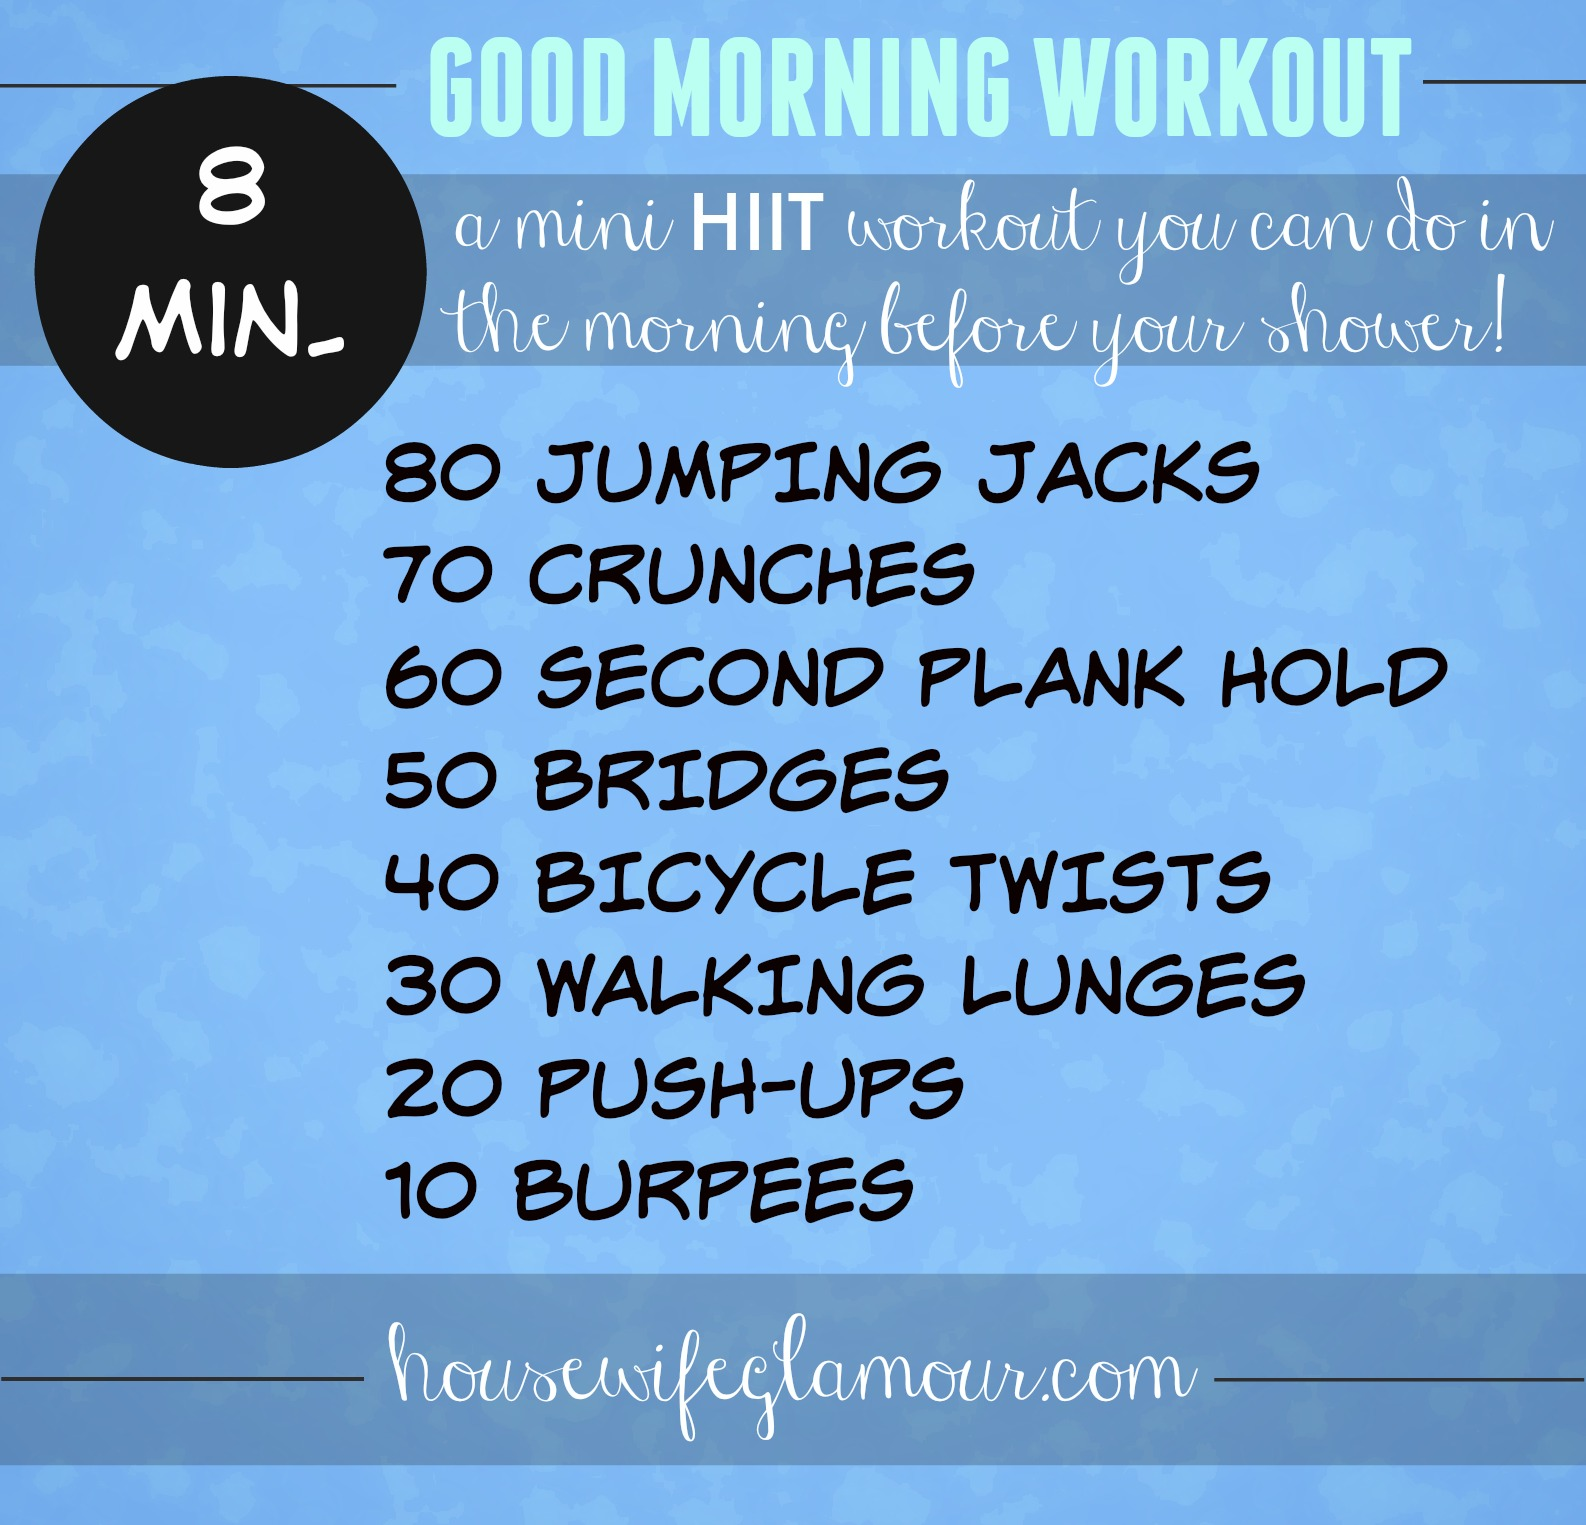 Mini HIIT workout before your shower